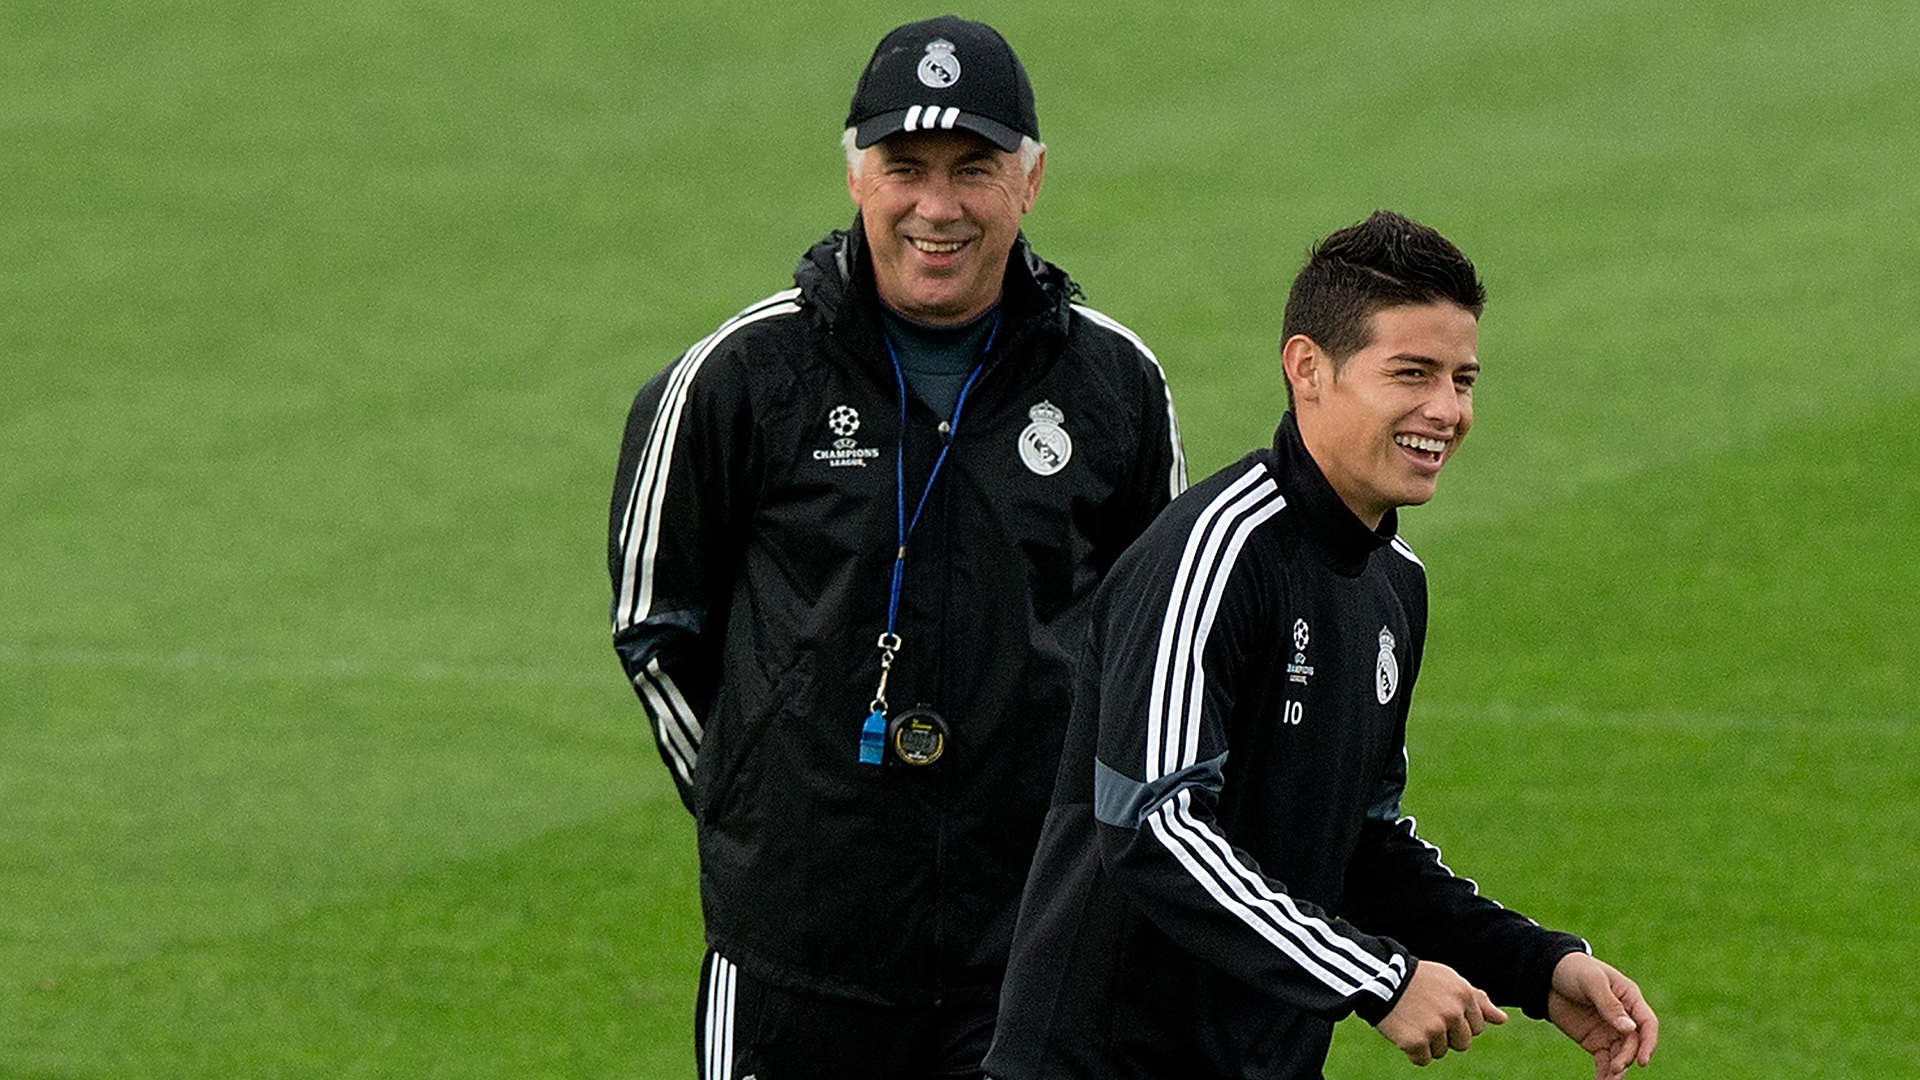 'I like James a lot, but I think he will stay with Madrid' - Everton boss Ancelotti plays down potential reunion with midfielder